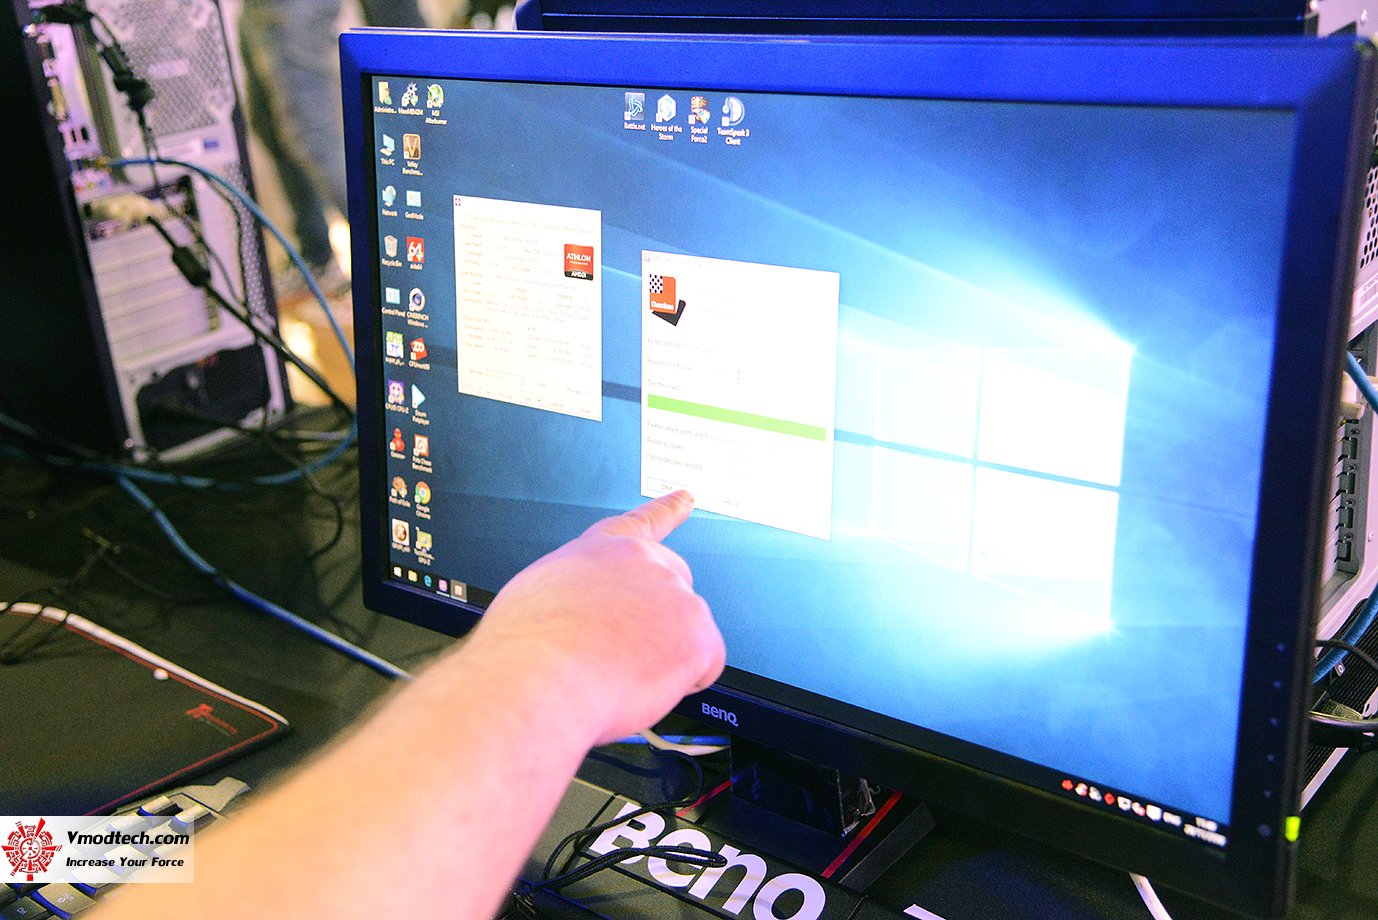 dsc 6664 AMD OMG! Party 2015 (AMD Overclock Modding Gaming Party 2015)